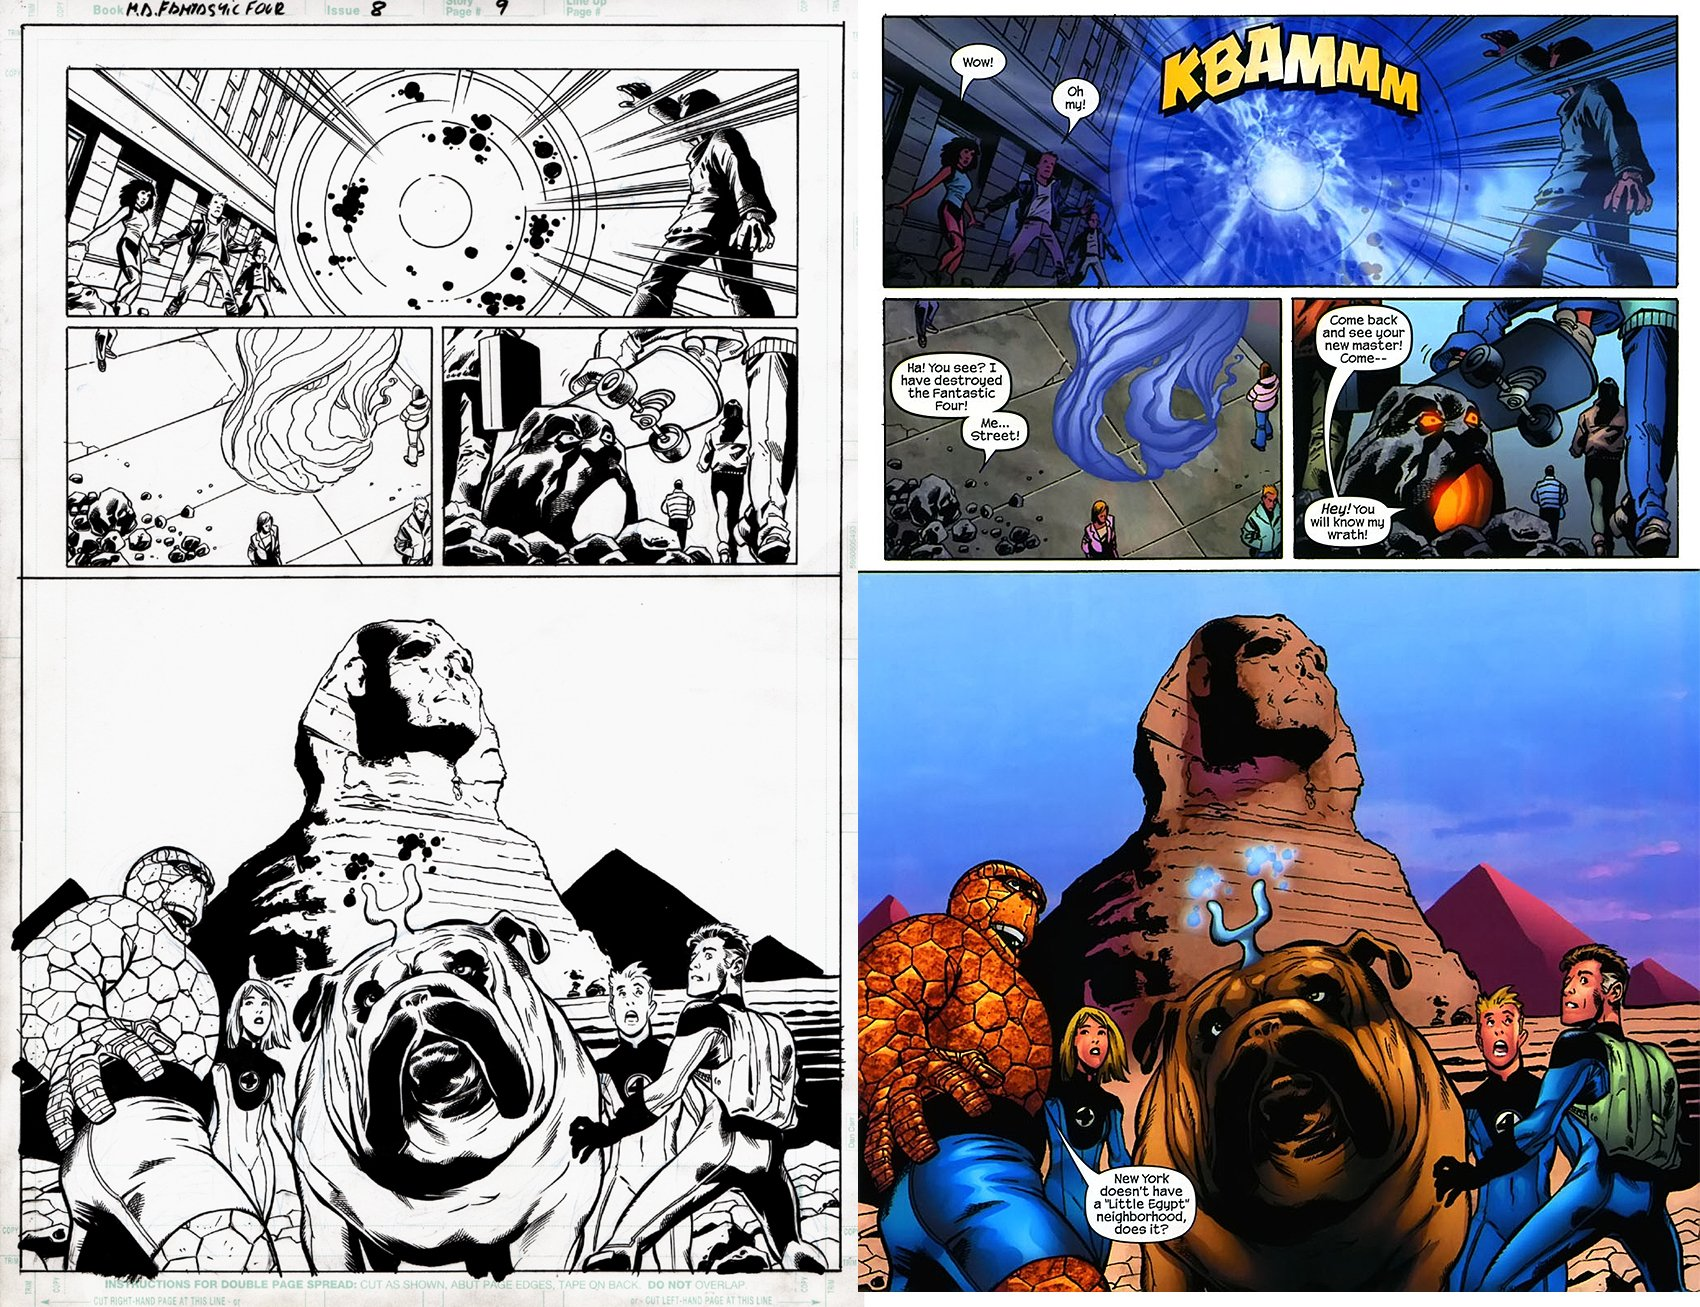 Fantastic Four 8 p 9(SOLD LIVE ON 'DUELING DEALERS OF COMIC ART' EPISODE #28 PODCAST ON 8-2-2021 (RE-WATCH THIS FUNNY ART SELLING SHOW HERE)